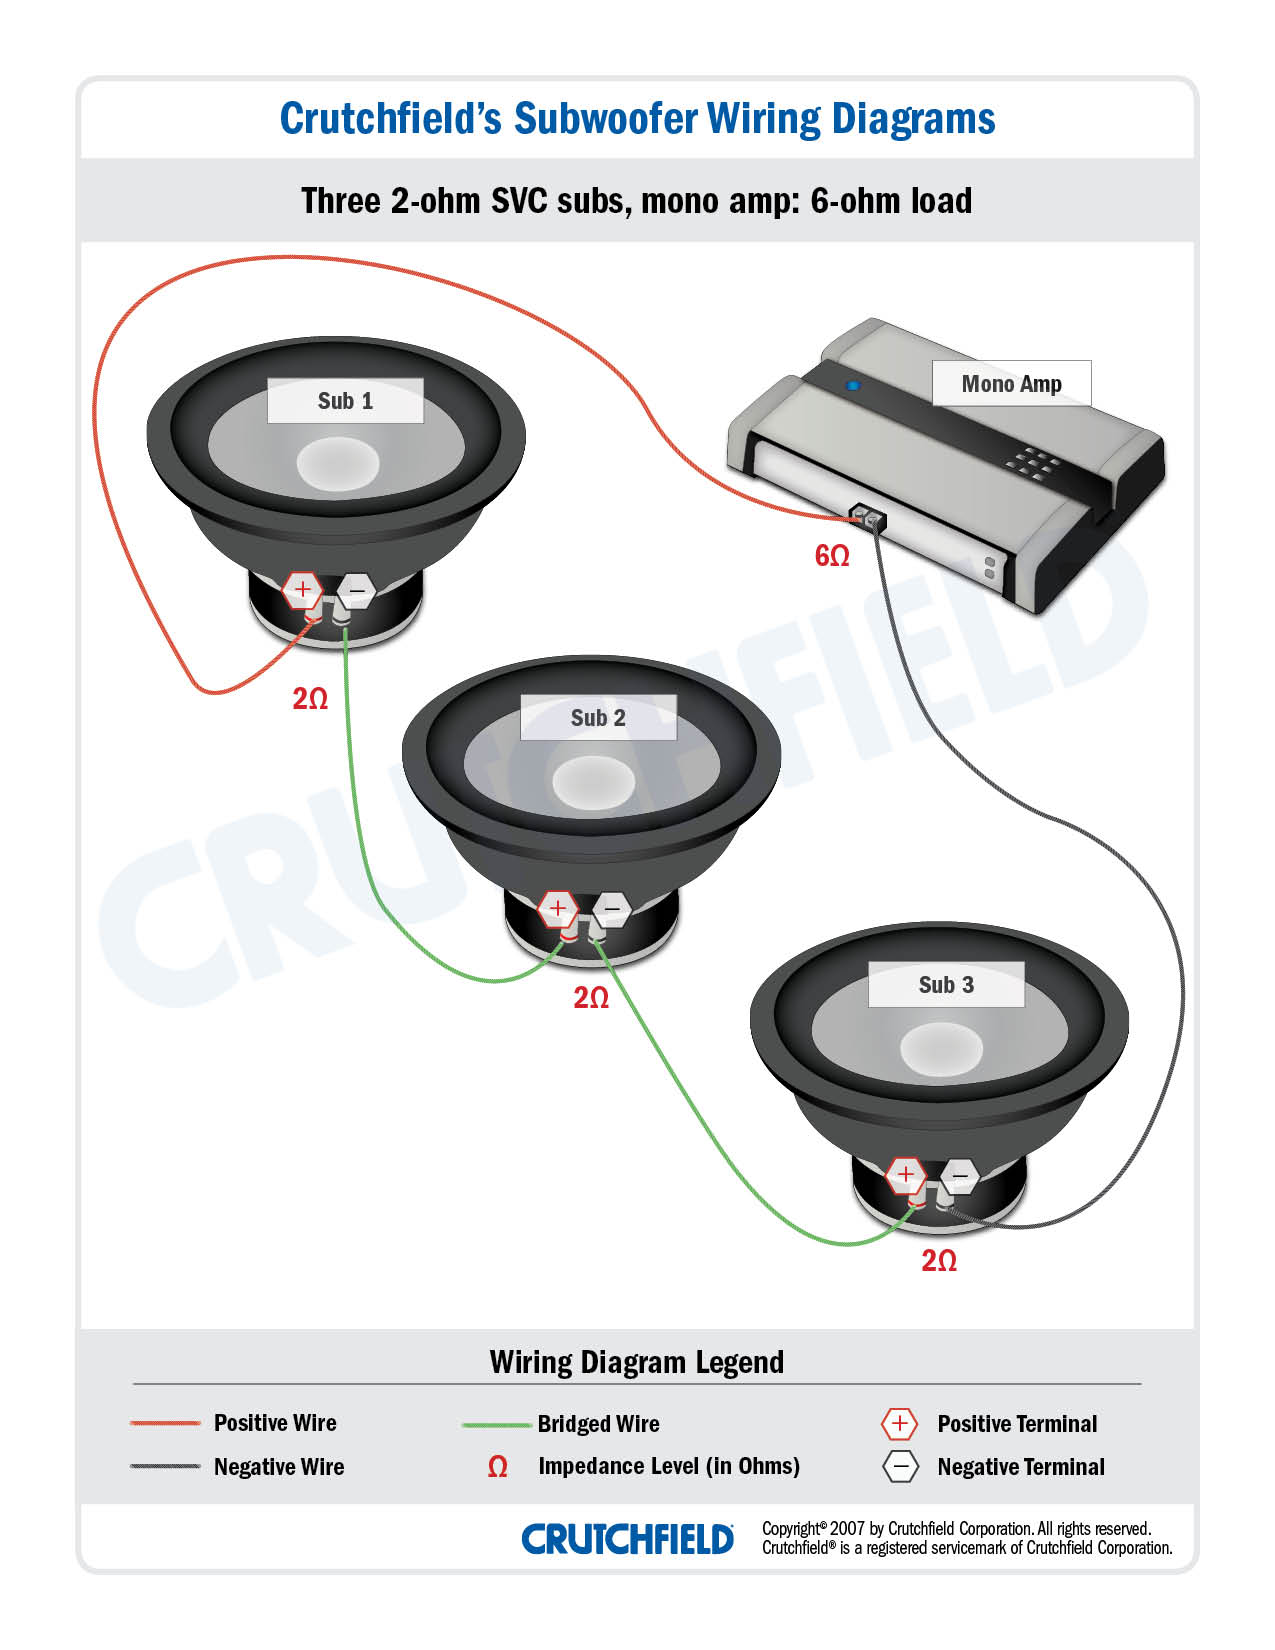 hight resolution of subwoofer wiring diagrams how to wire your subs rh crutchfield com 1 ohm subwoofer wiring diagram home subwoofer wiring diagrams